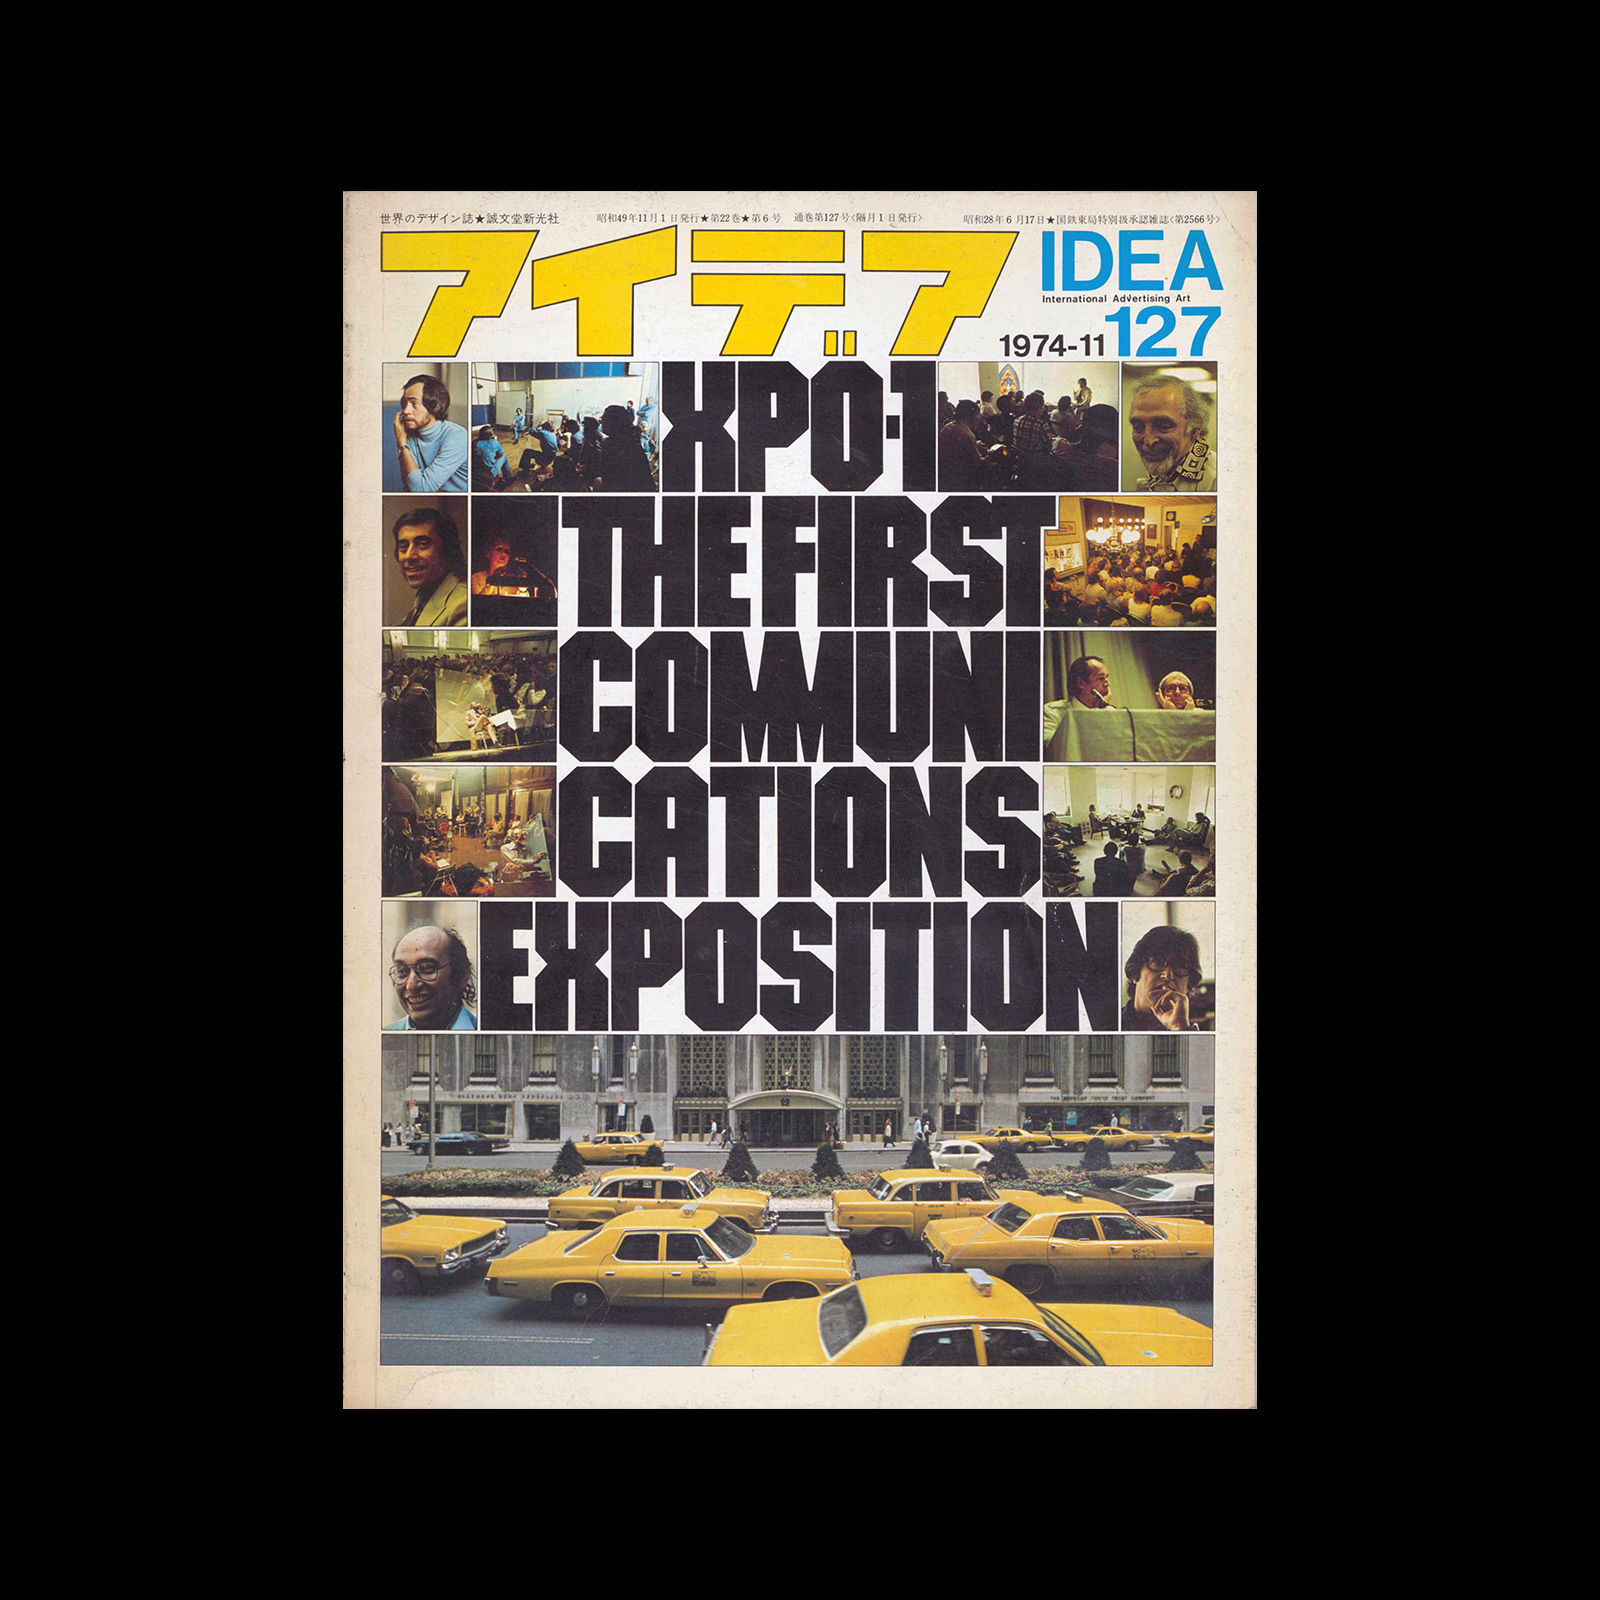 Idea 127, 1974-11. Cover design by Herb Lubalin